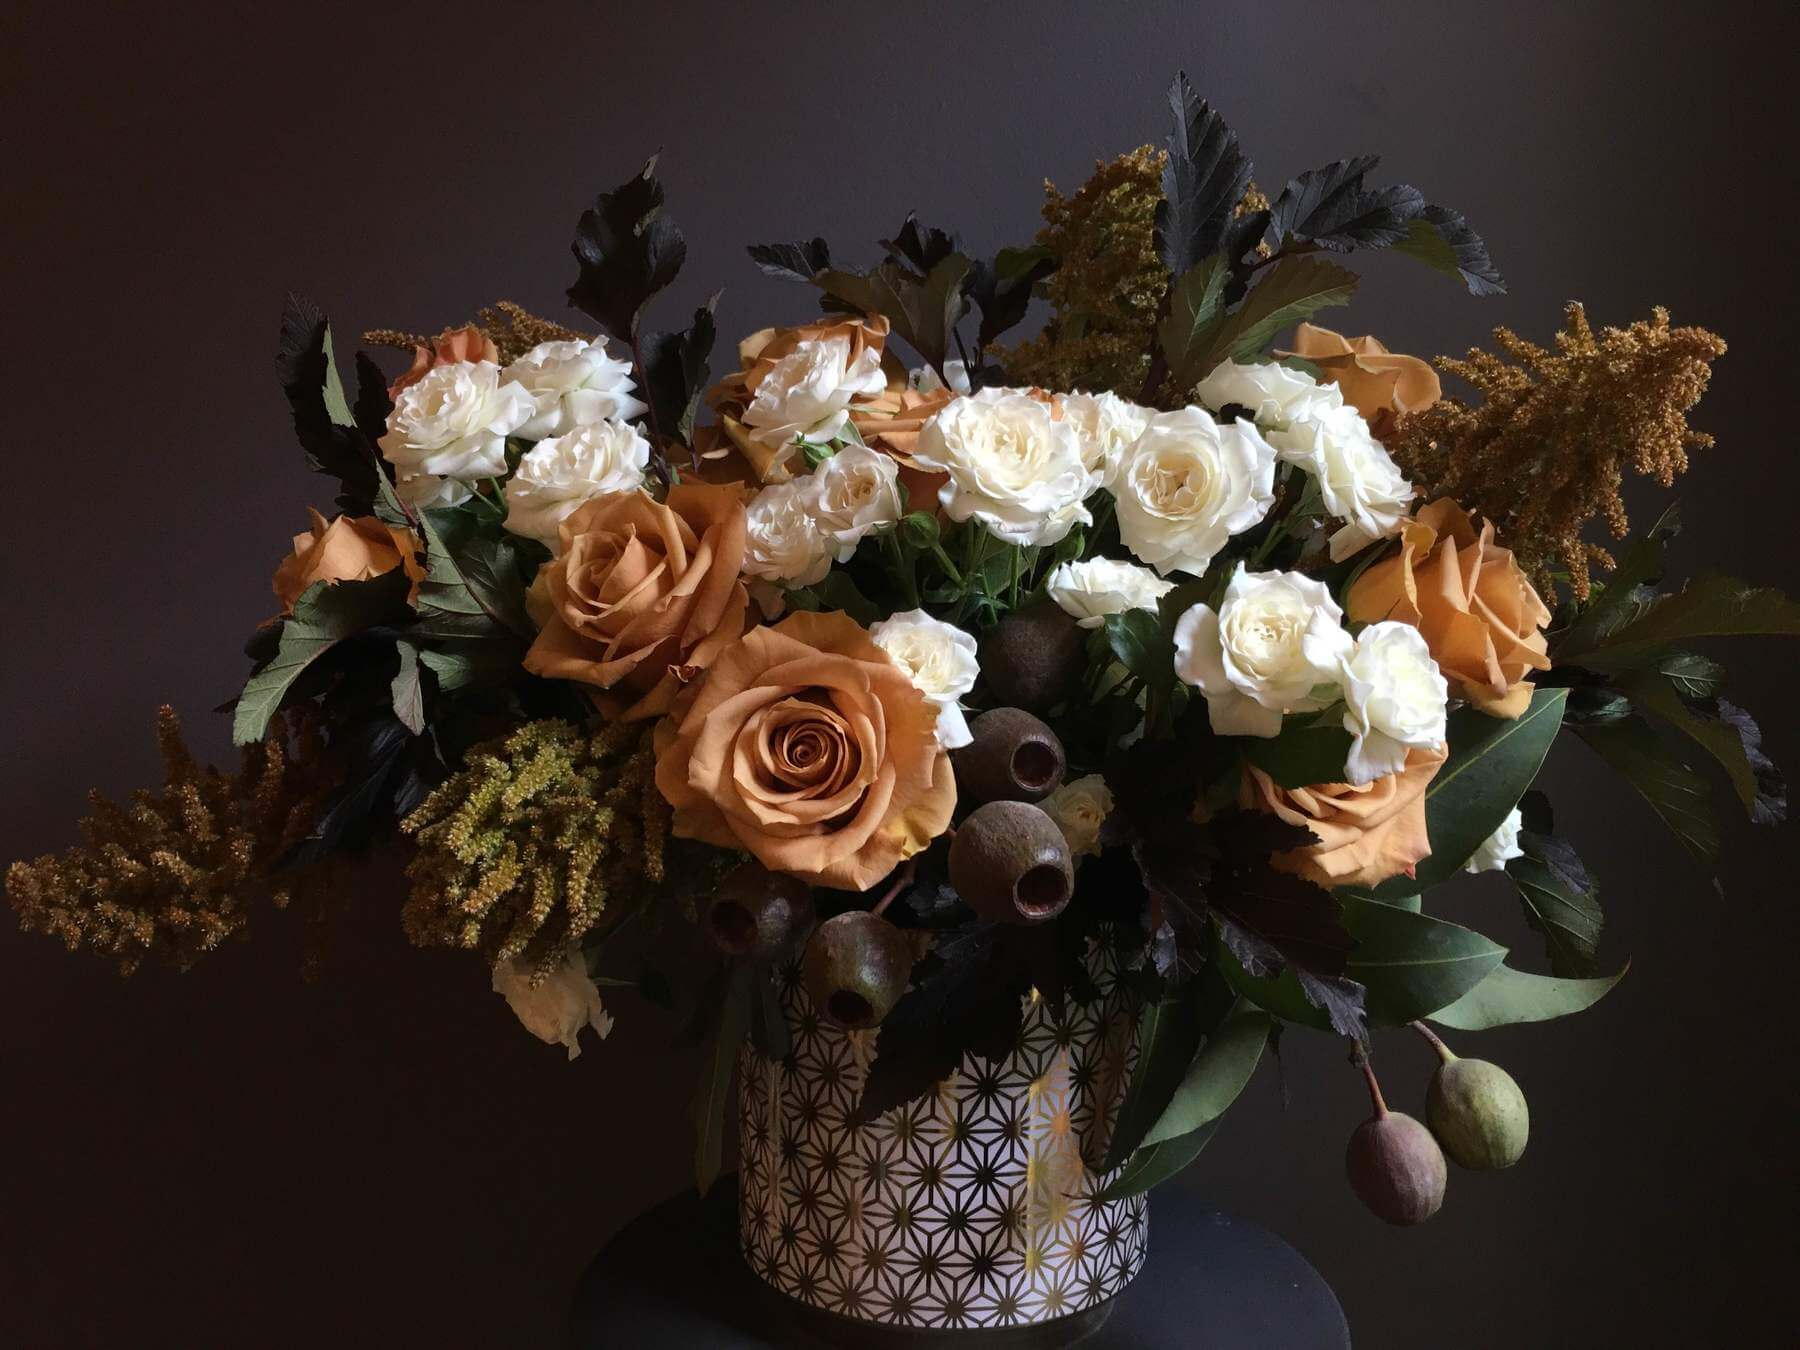 FLWR Shop uses local flowers alongside flowers from around the world in their arrangements!